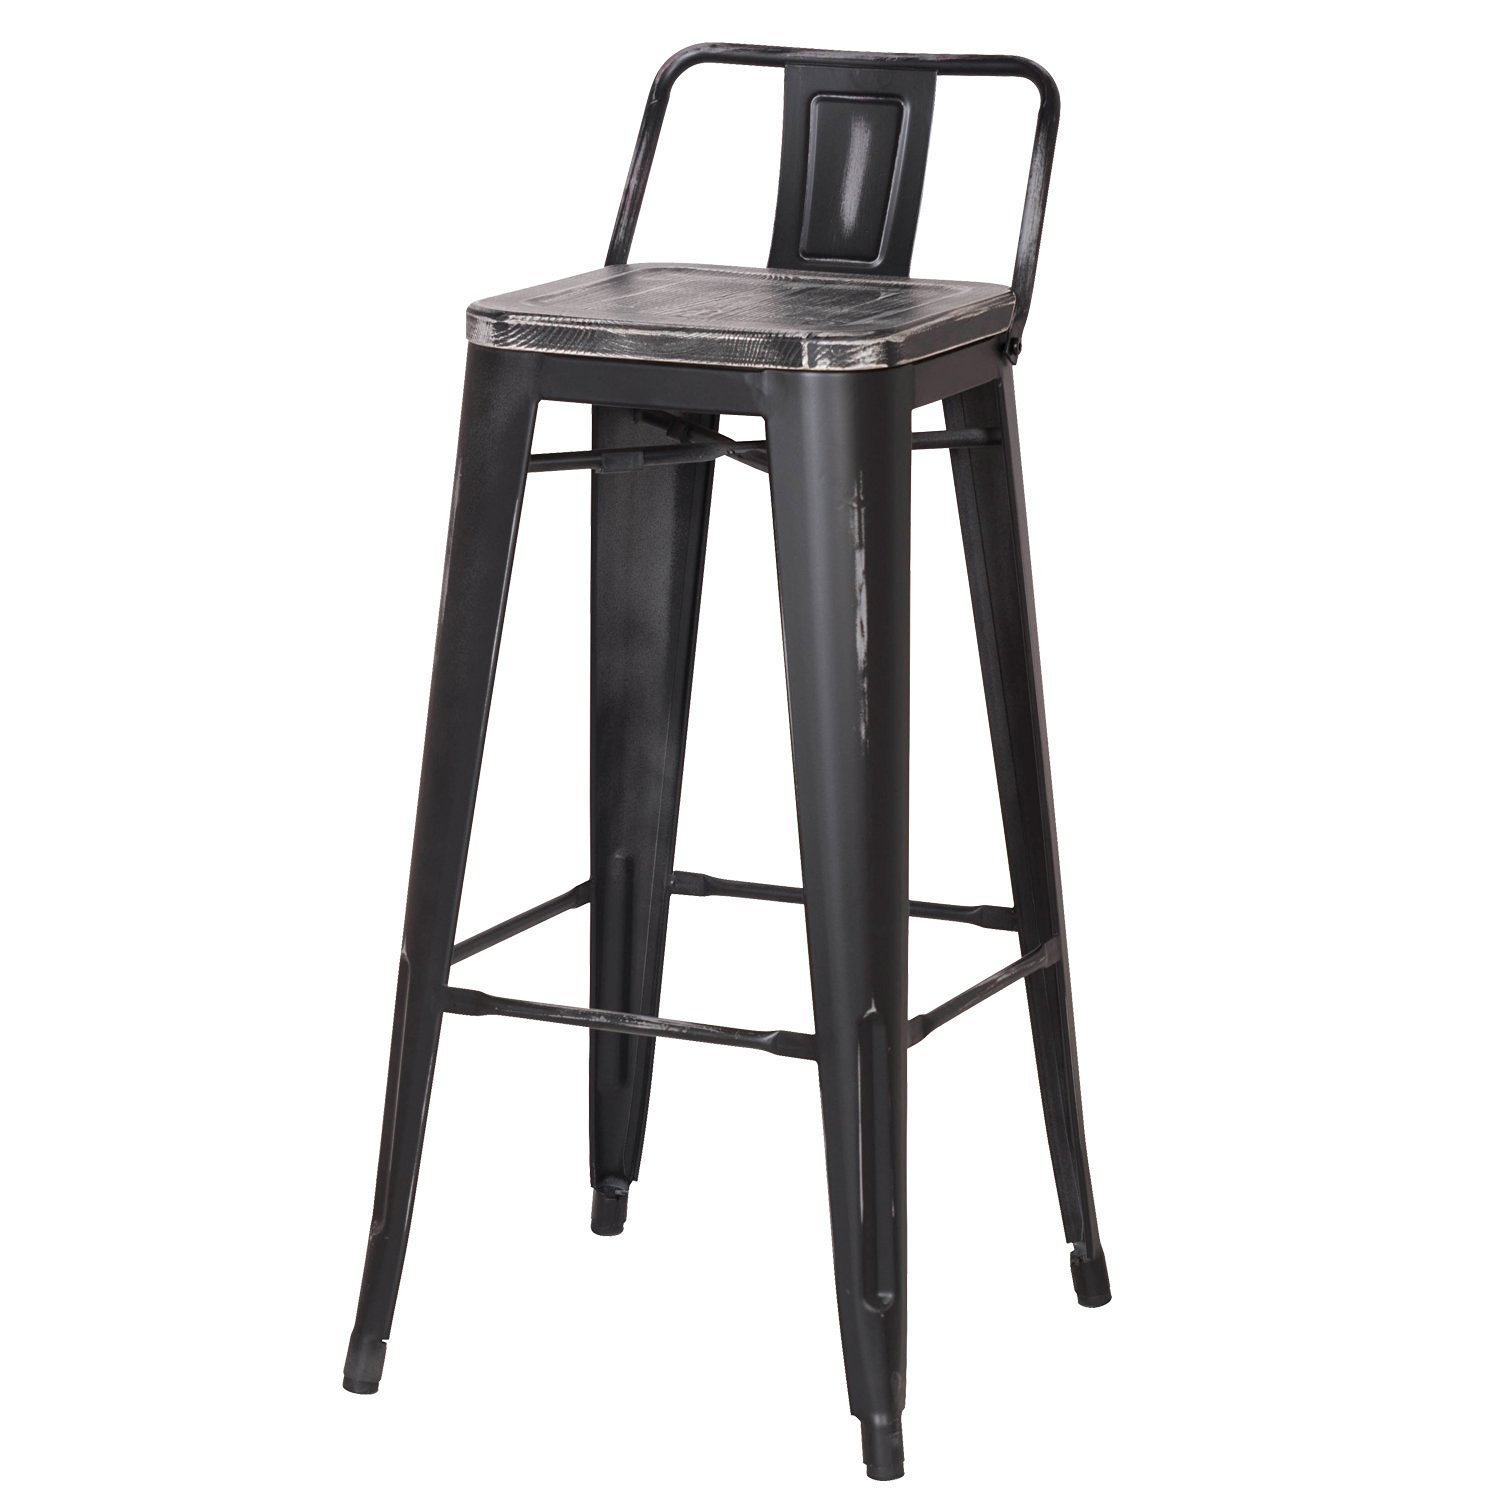 Picture of: Decenthome Distresed Black Metal Bar Stools With Dark Wooden Seat Ch0276 3 Ach276 3